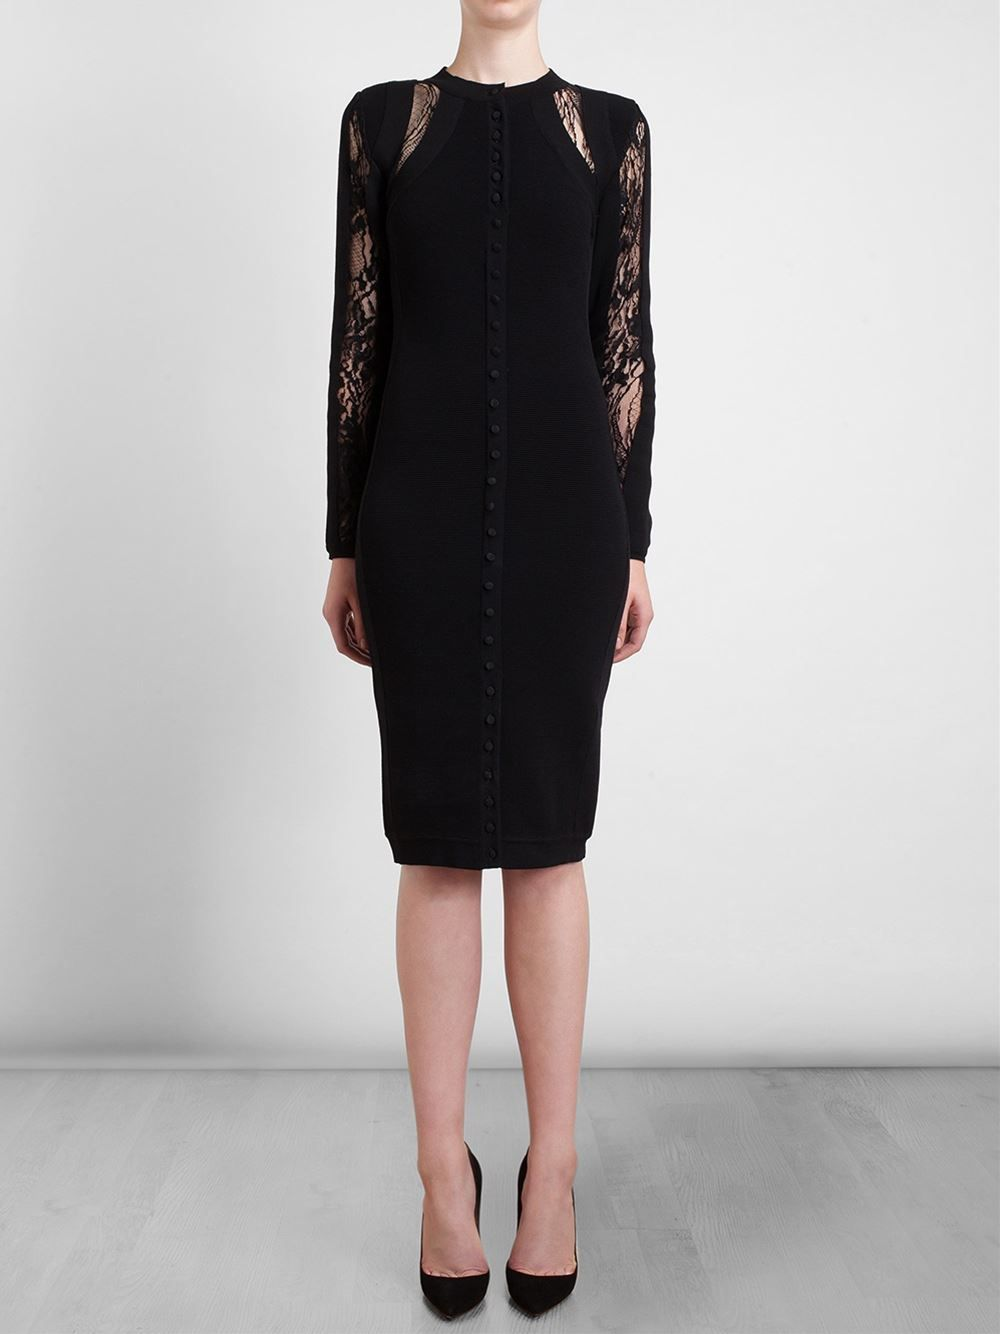 ANTONIO BERARDI Buttoned Lace Inset Dress $2,103.08